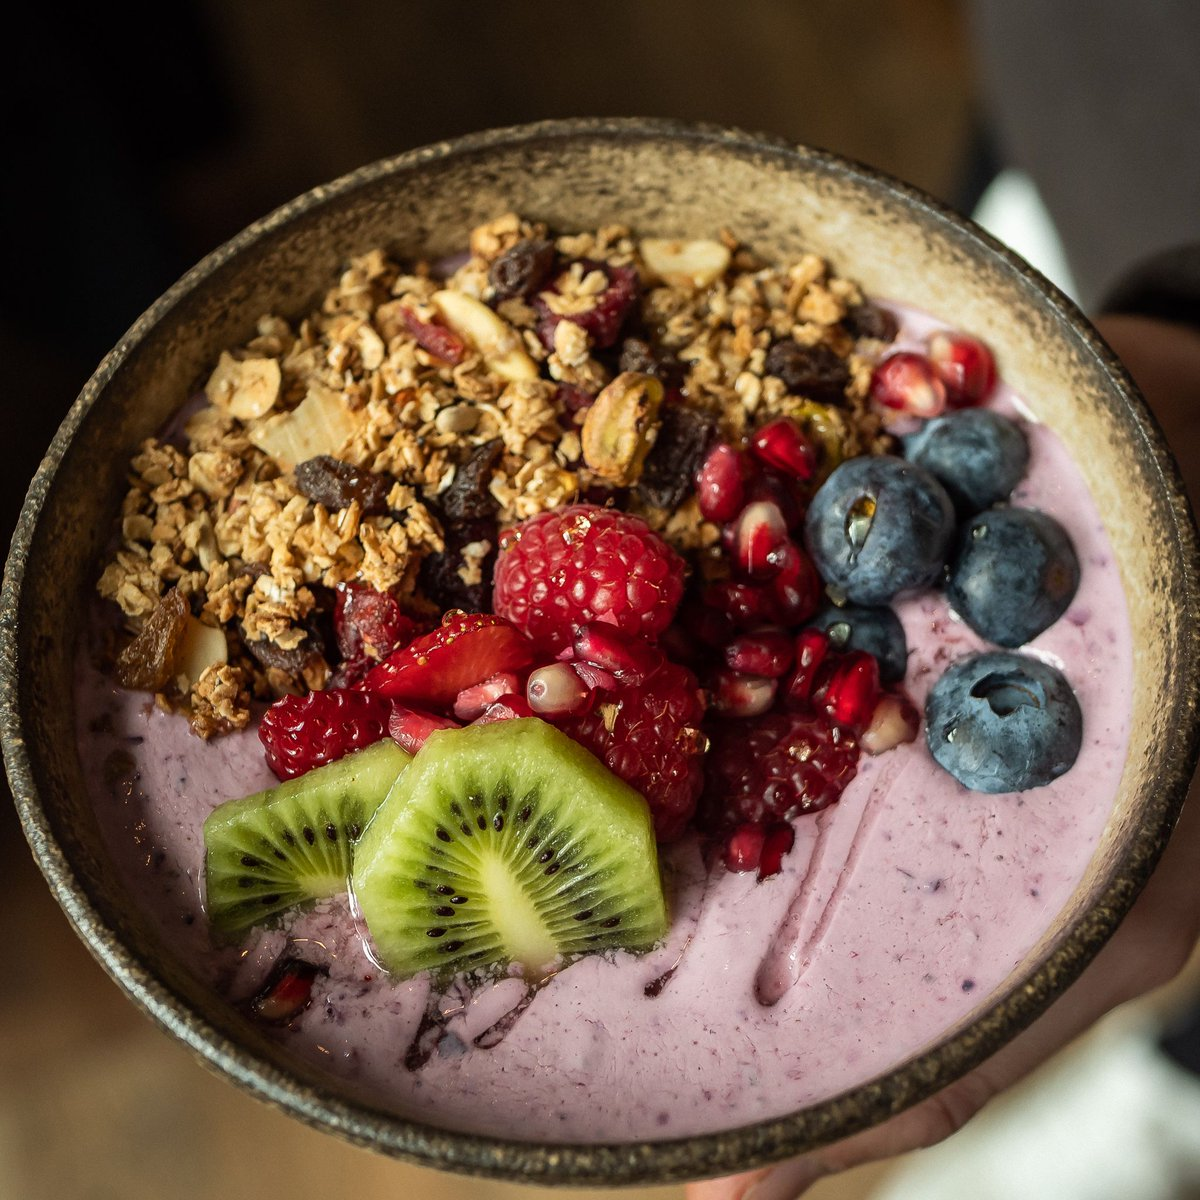 PKB Spinningfields has a new menu coming next week... Check out one of the new dishes - Smoothie Bowl with Homemade Granola #summer